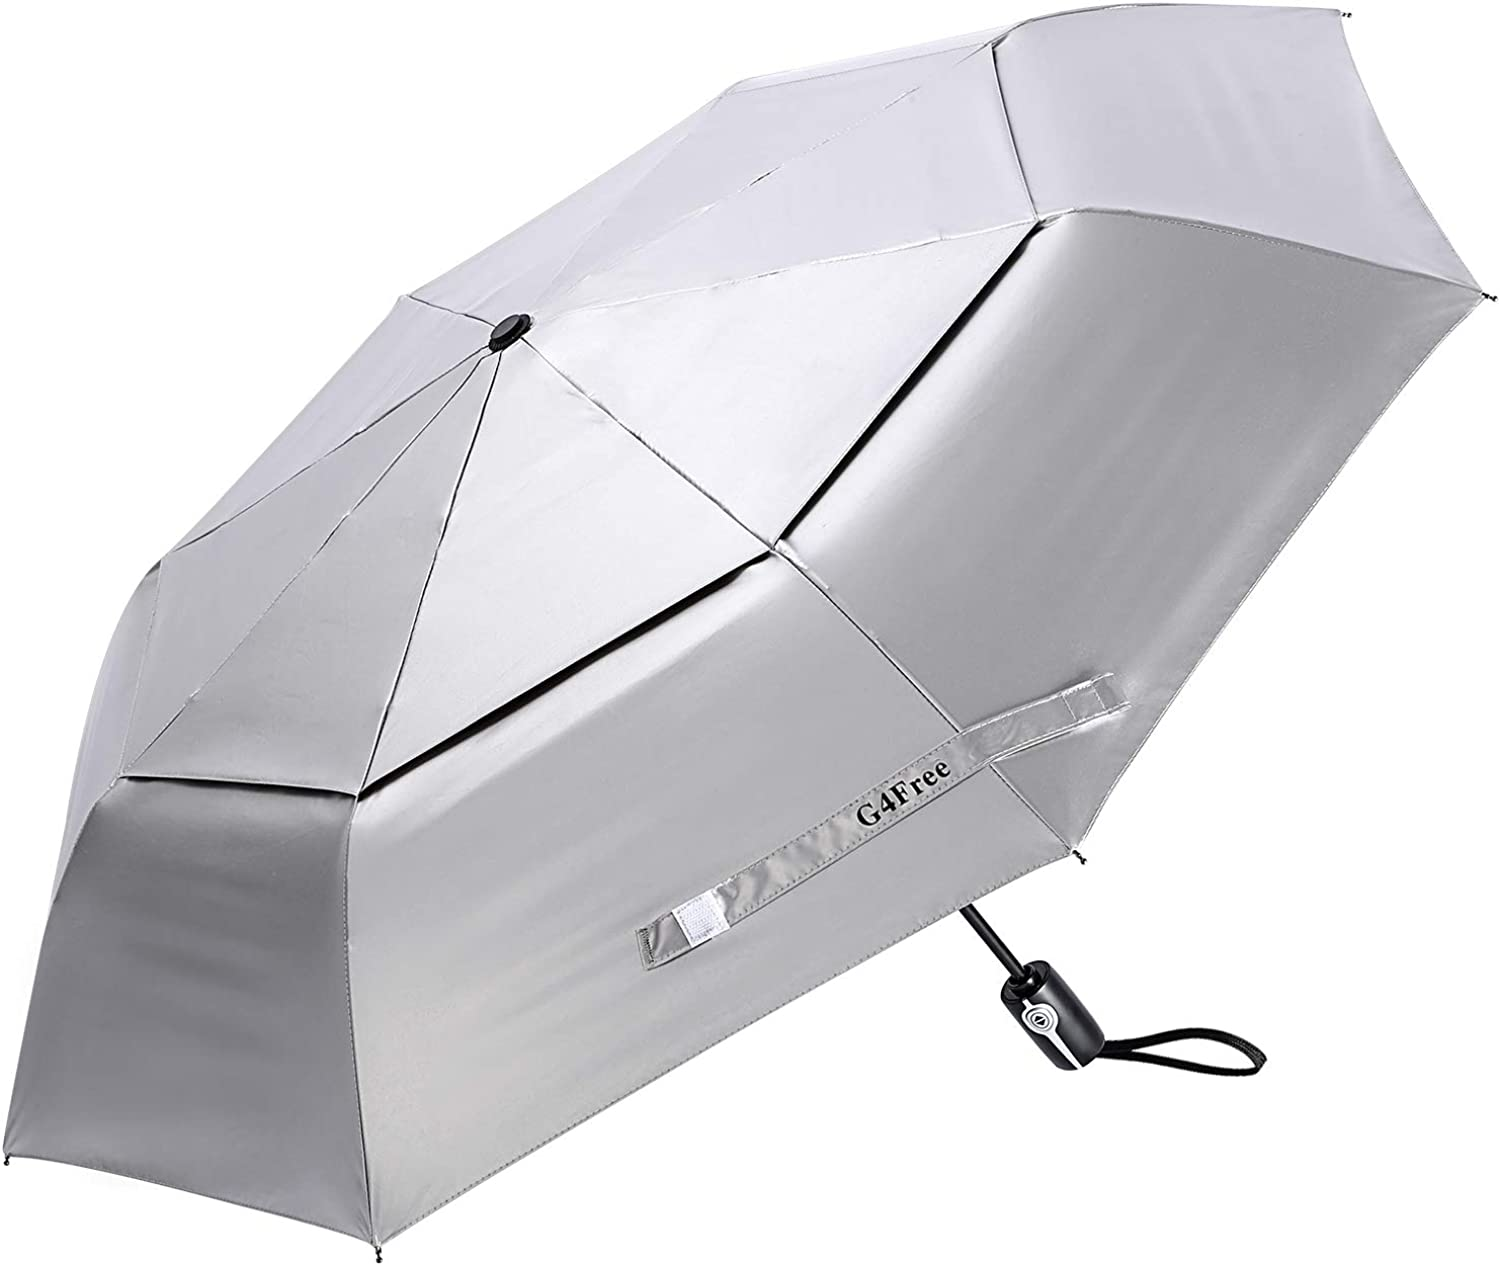 Air Force Sign Darkness Sun Umbrella Parasol UV Protection Auto Open Folding With Sun Protection For Women U.S